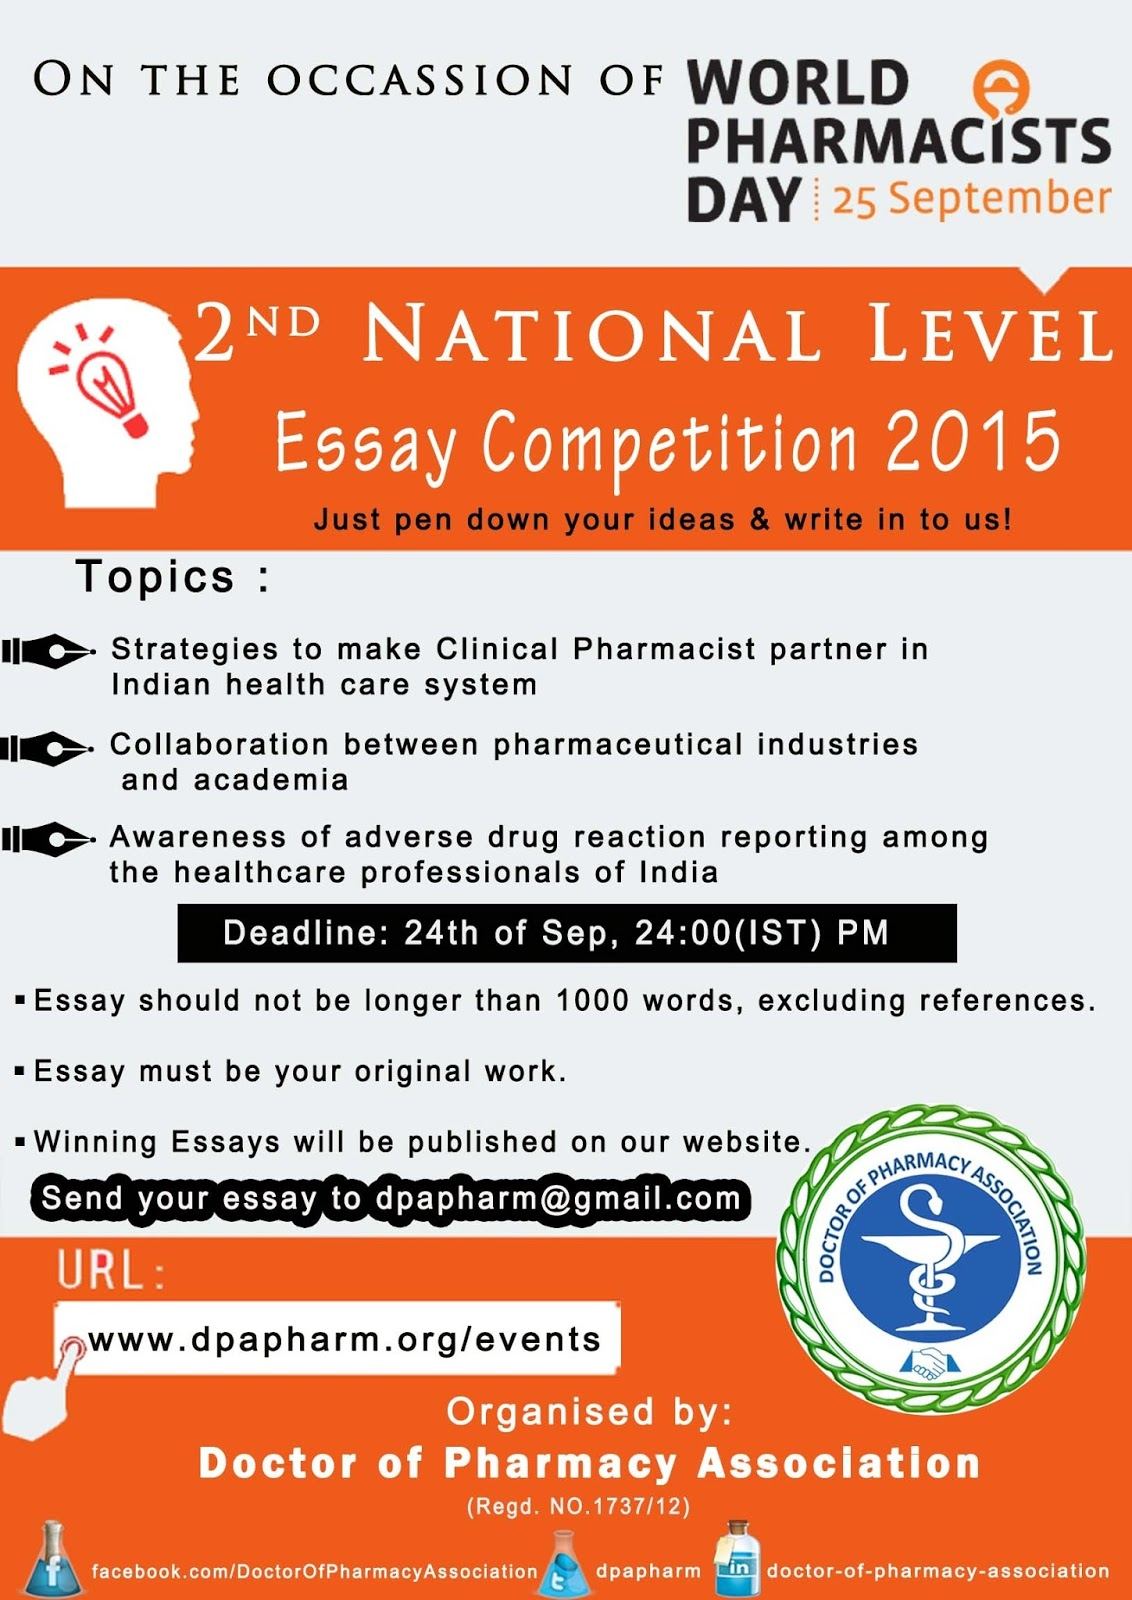 International essay competitions for students